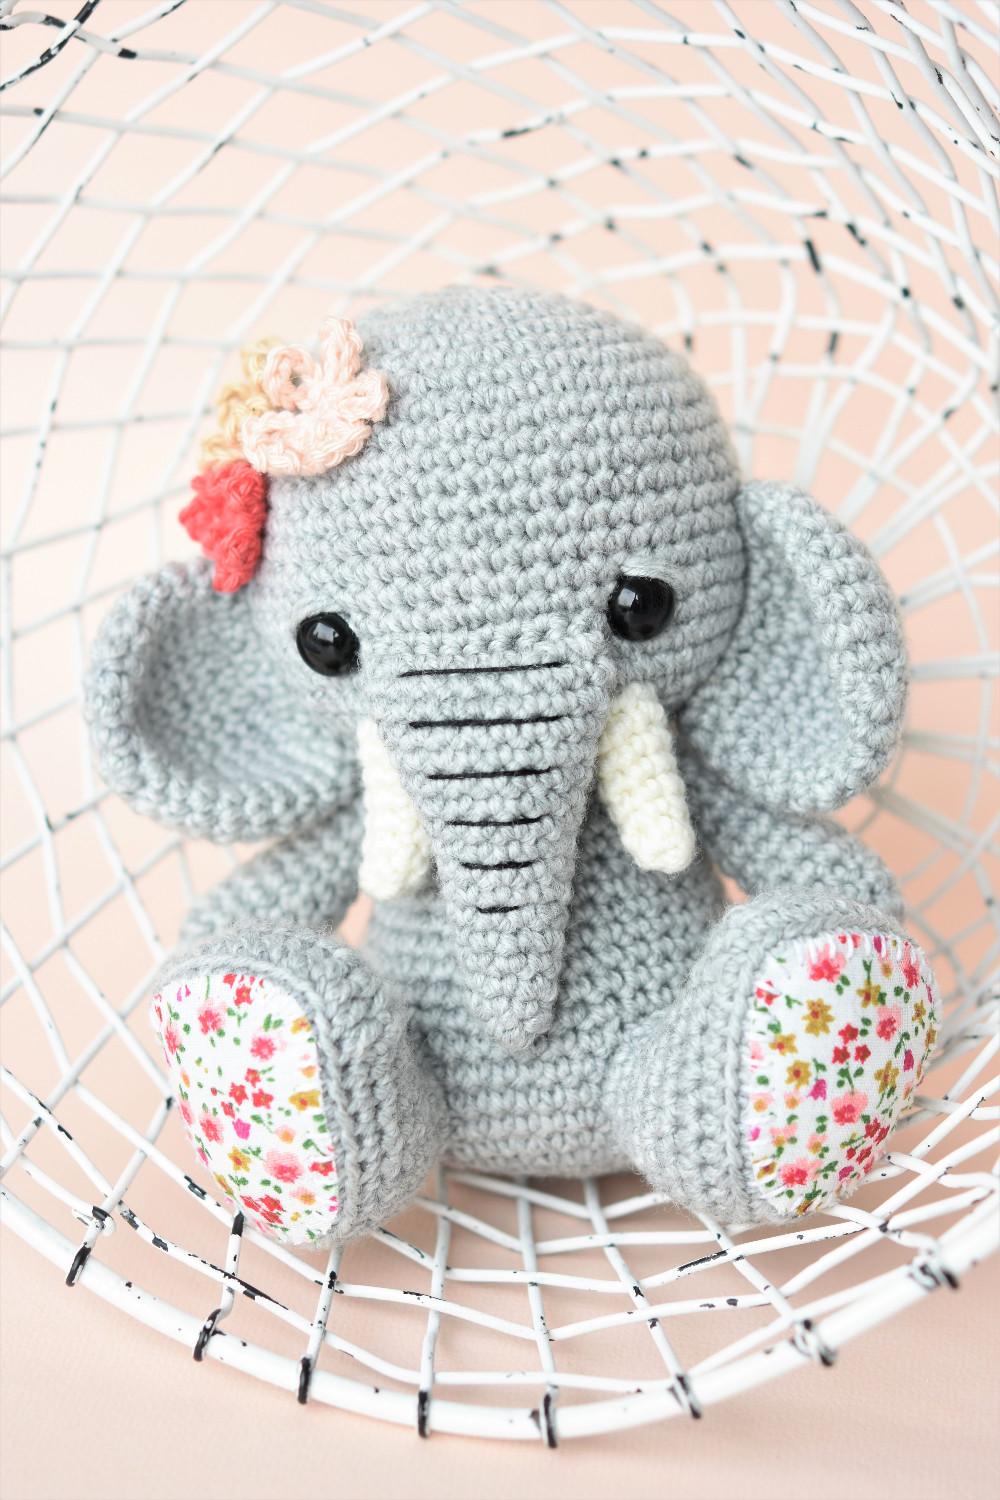 Amigurumi Crochet Elephant Pattern (With images) | Crochet ... | 1500x1000